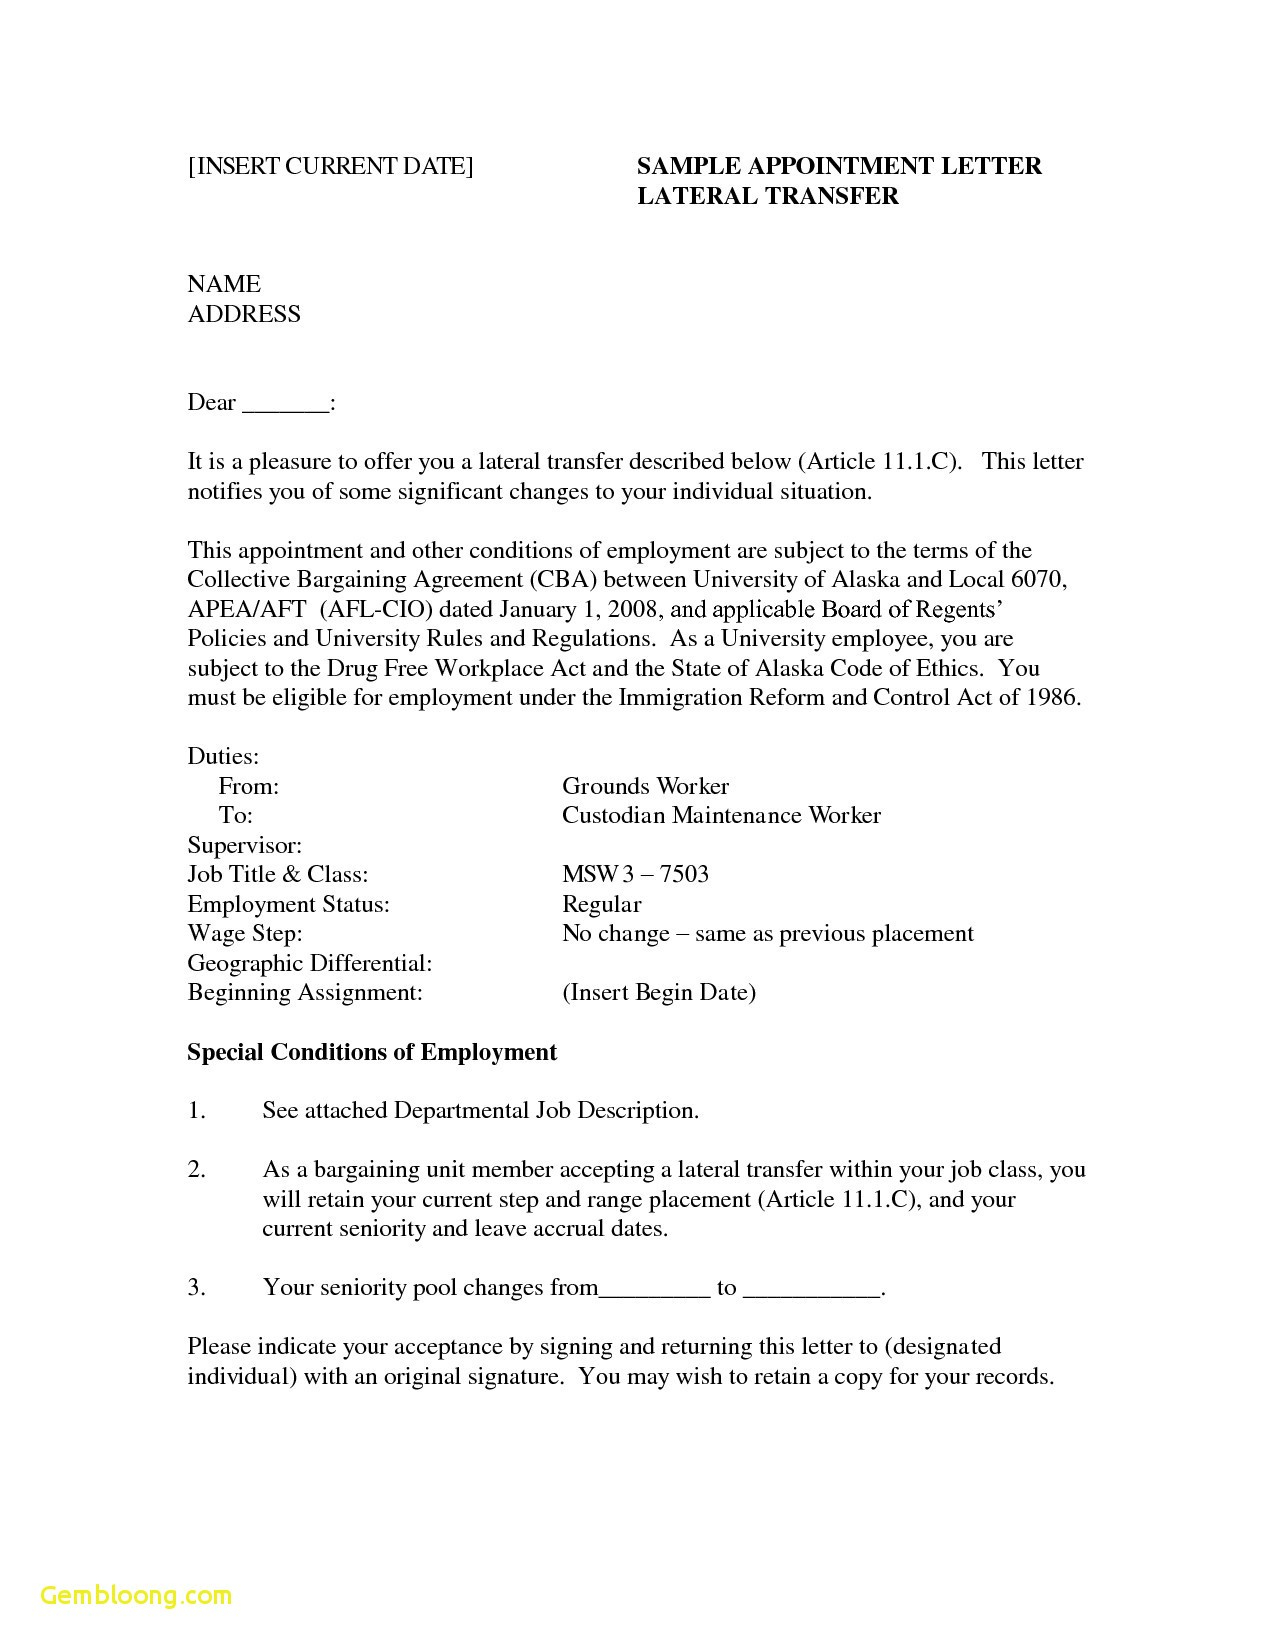 Employee Relocation Letter Template - Sample Relocation Cover Letter for Employment